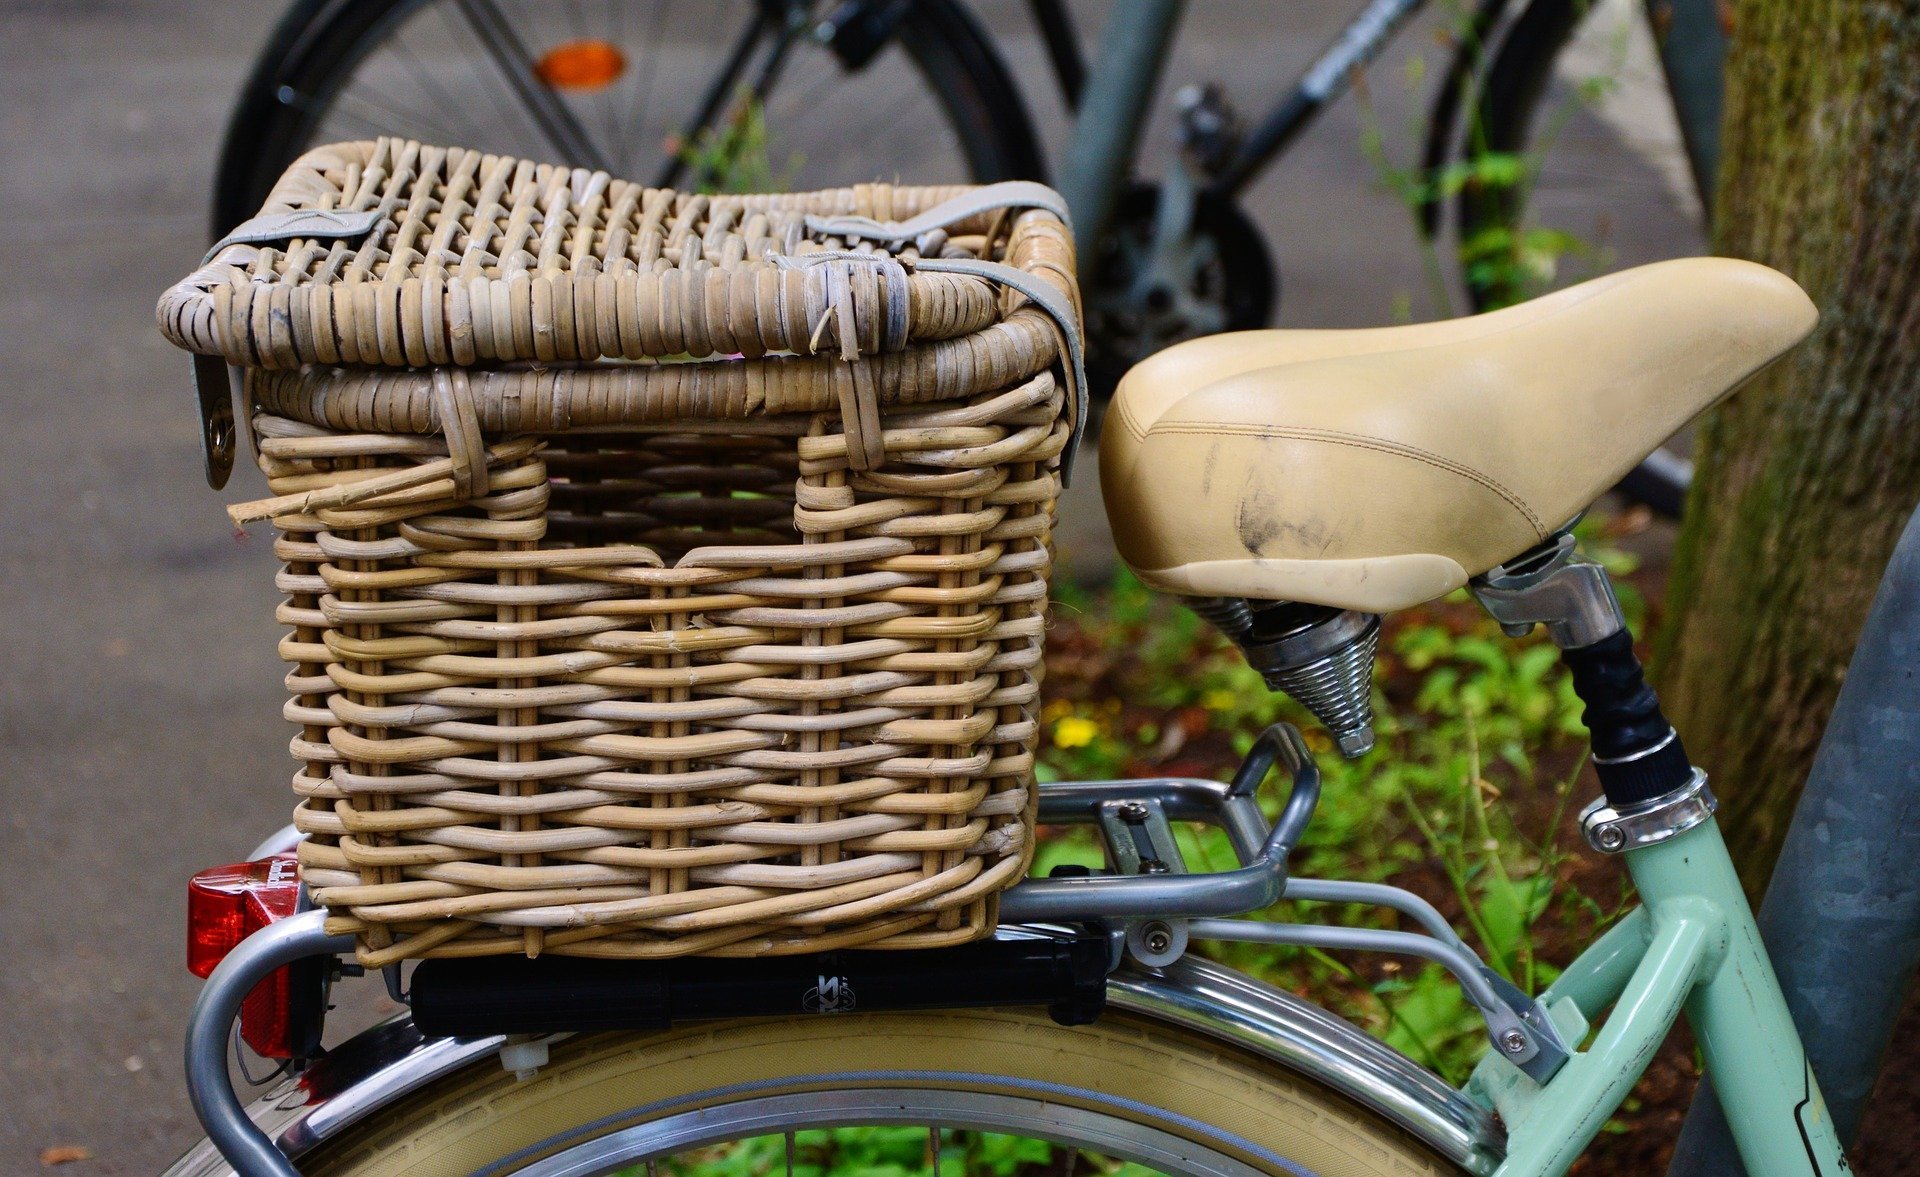 A bicycle with a basket attached   Photo: Pixabay/congerdesign